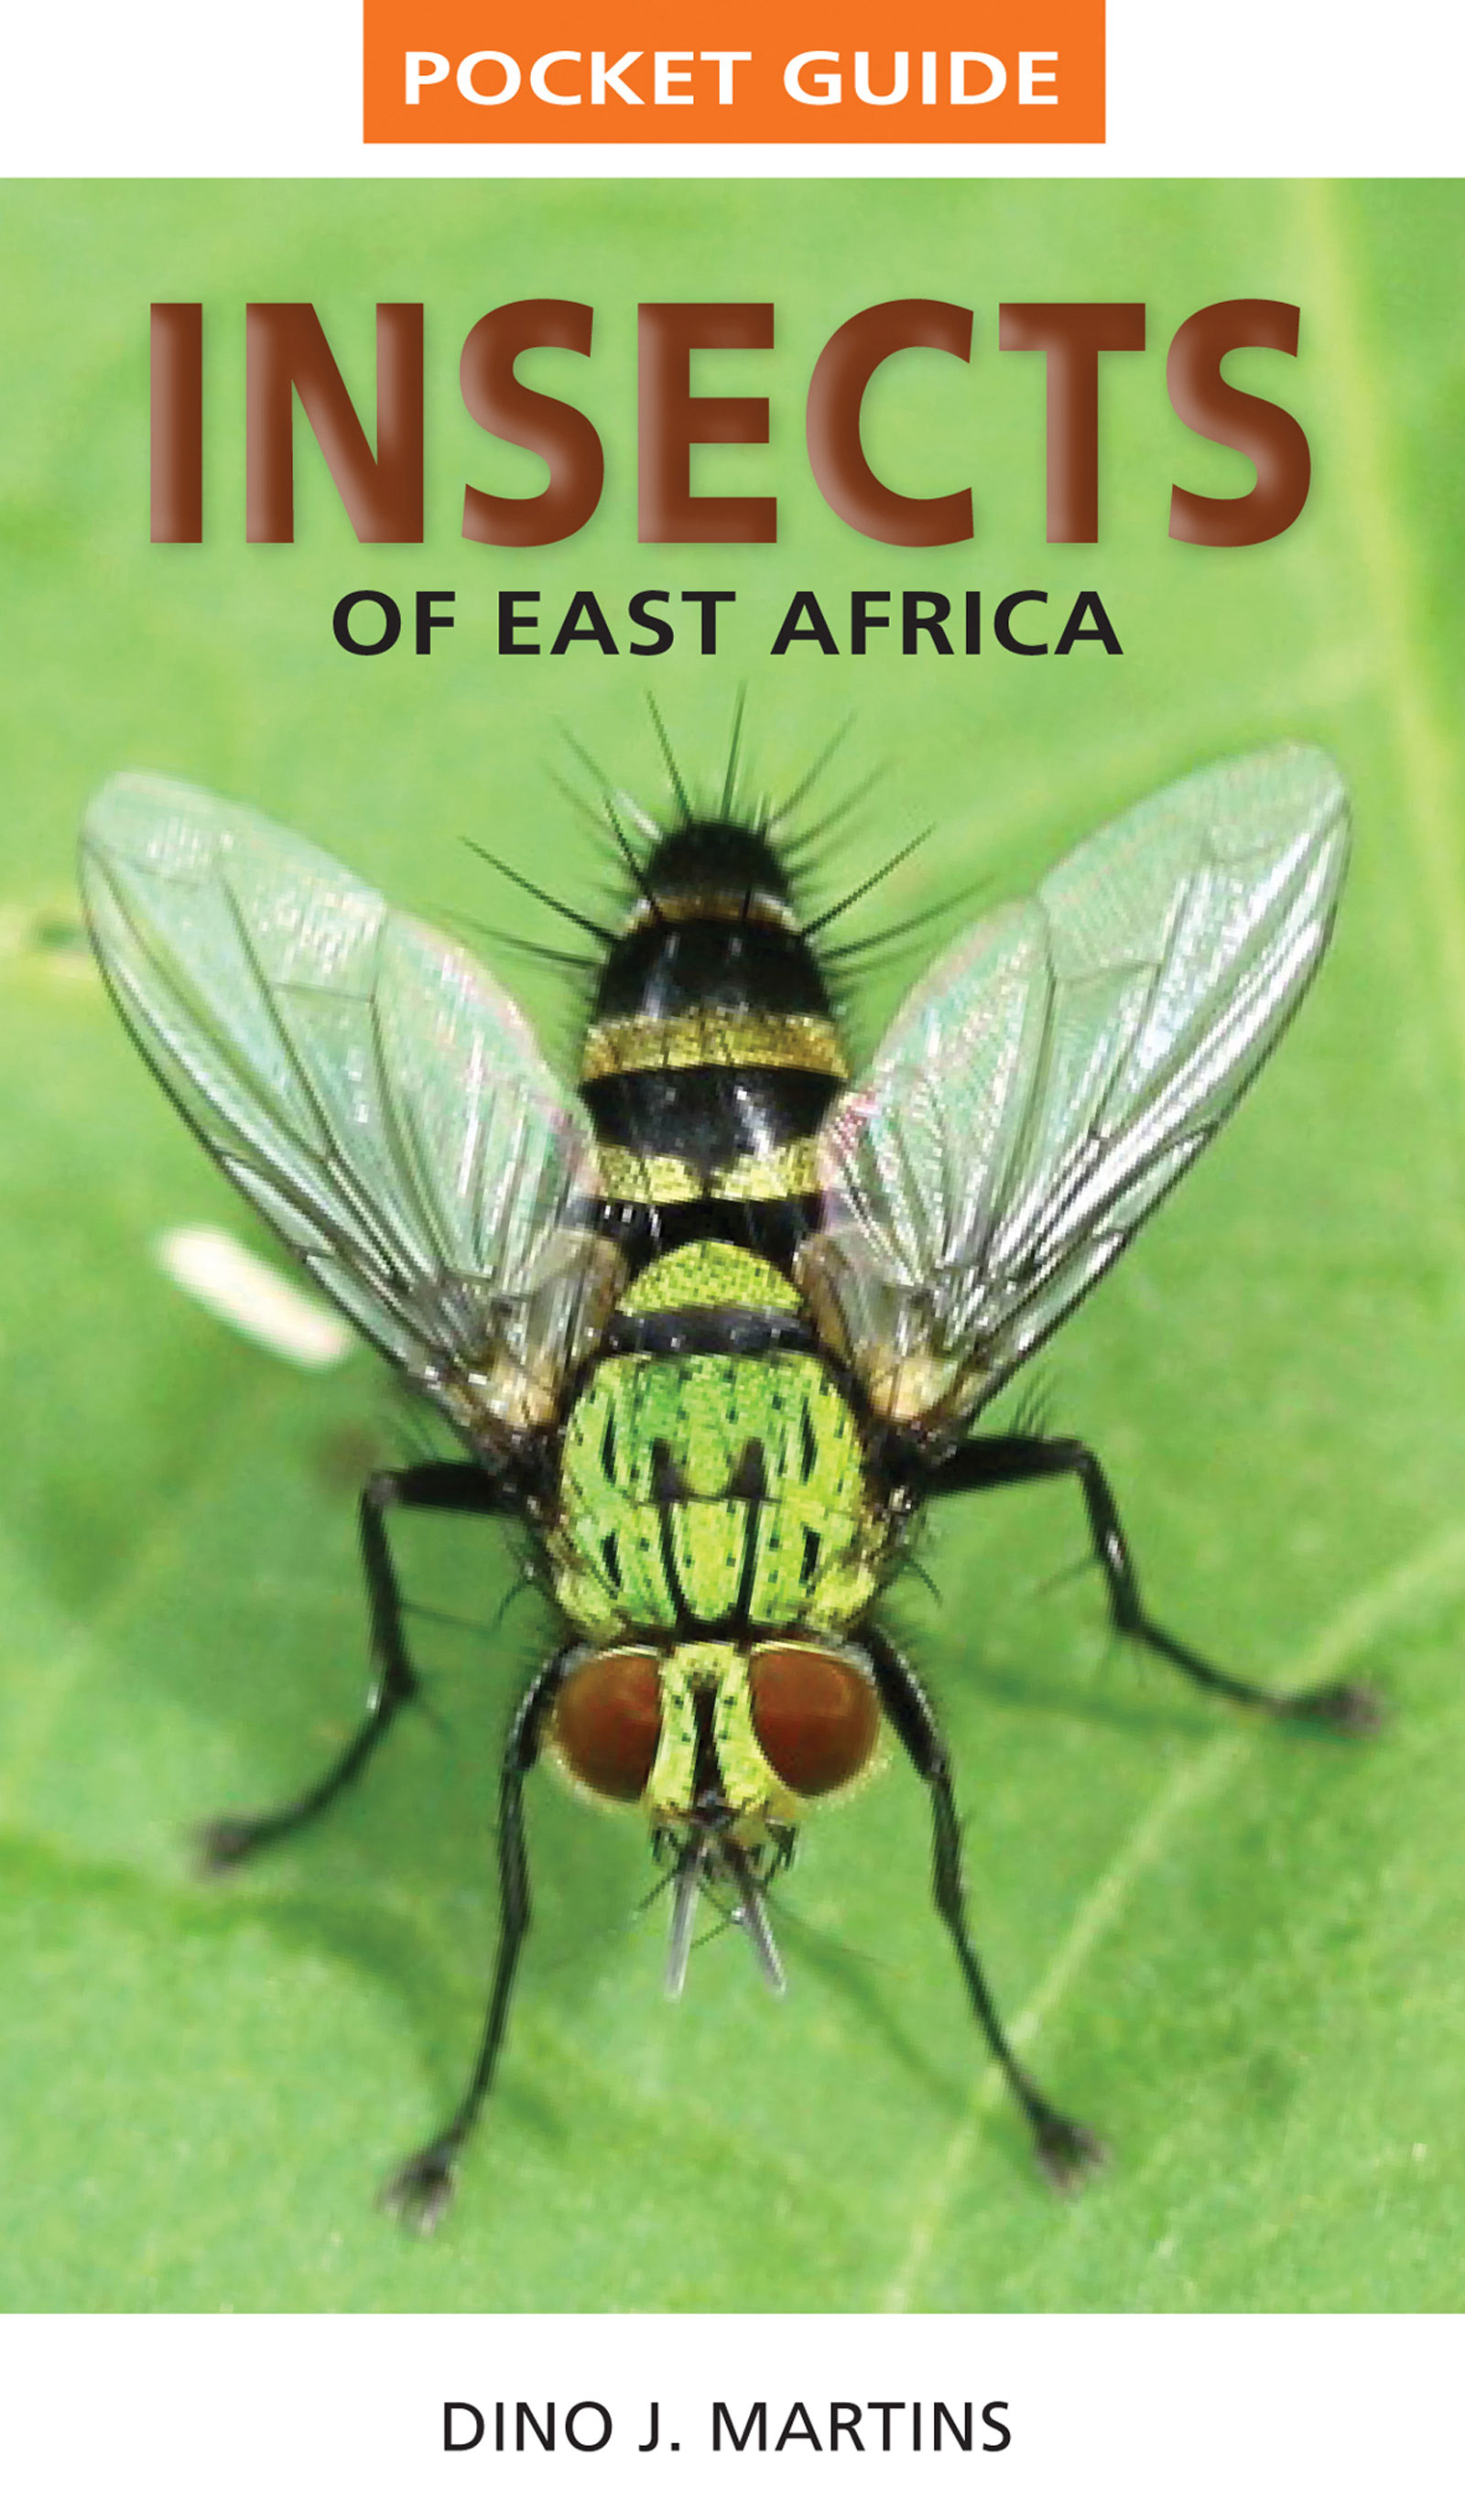 Picture of Pocket Guide Insects of East Africa